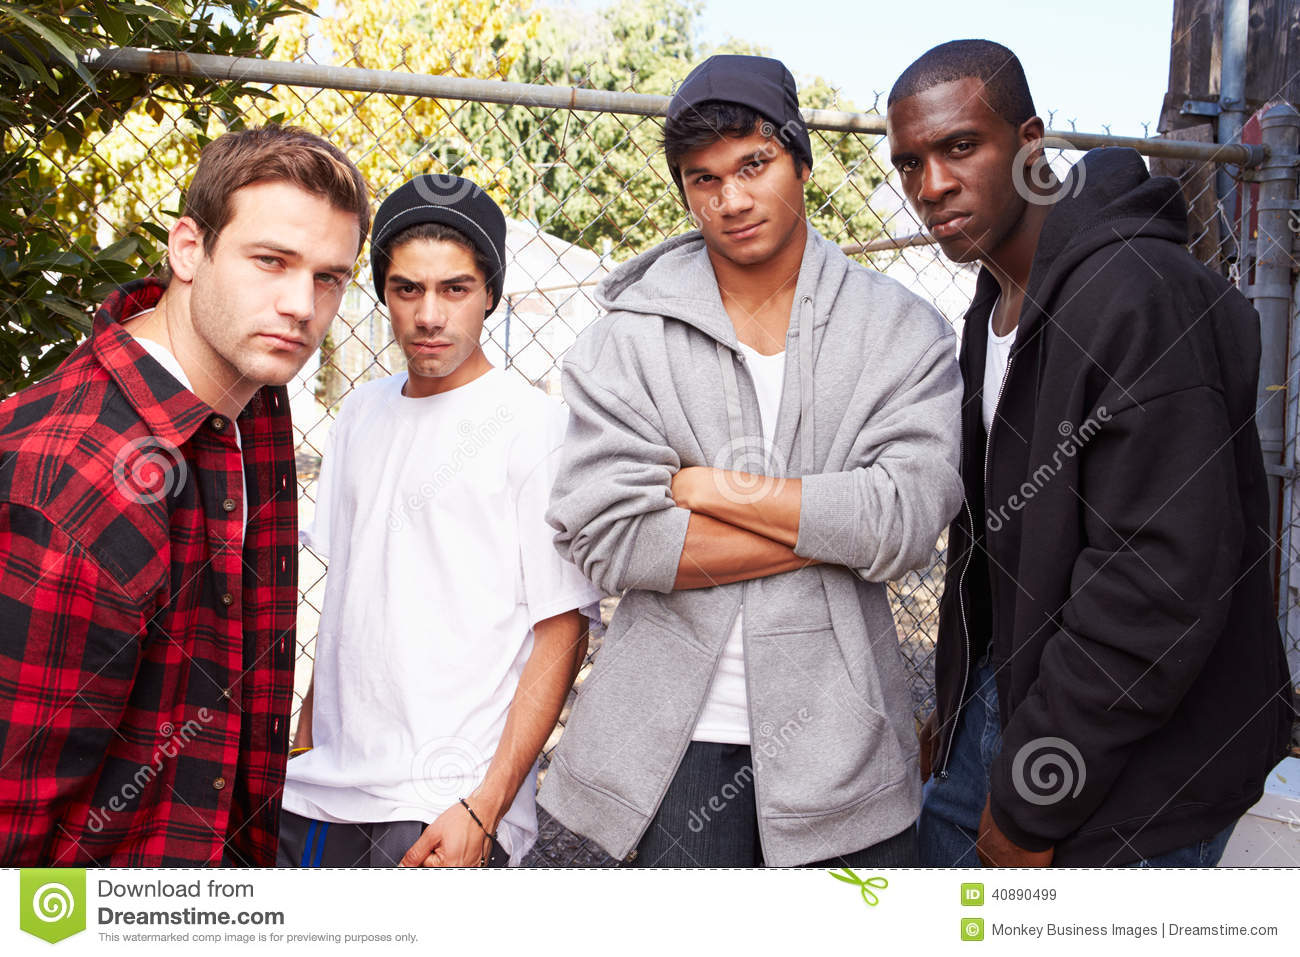 group of young guys standing